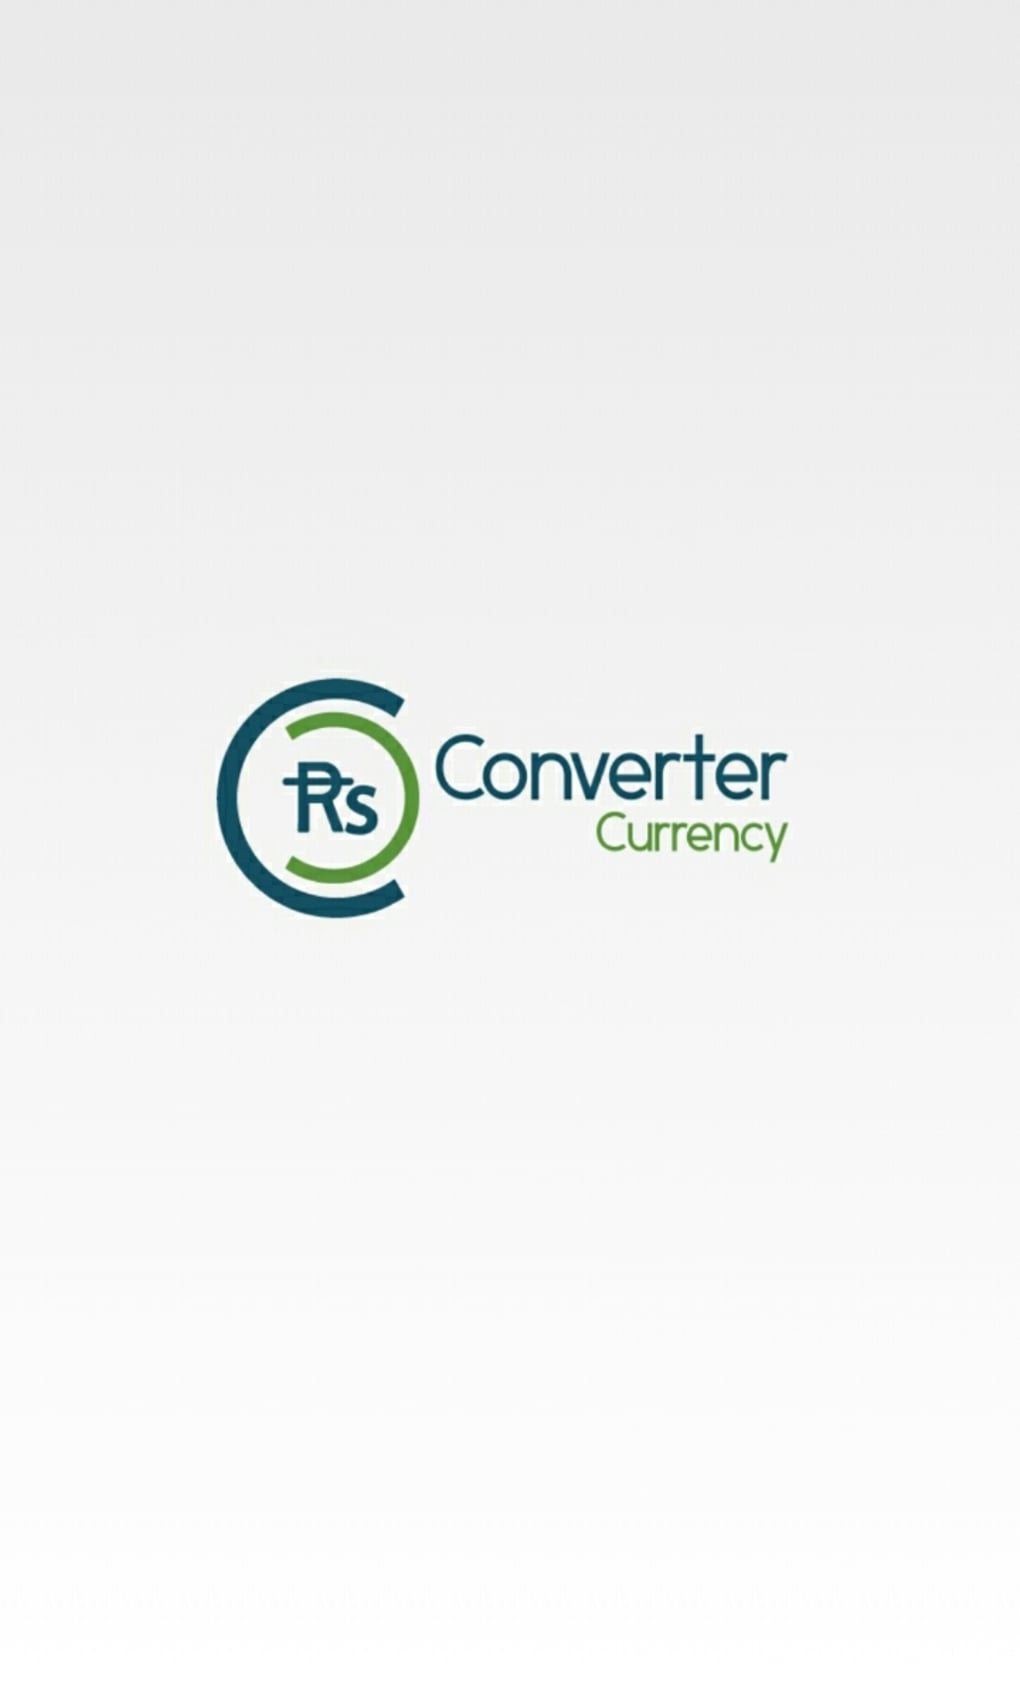 Currency Converter for Android - Download